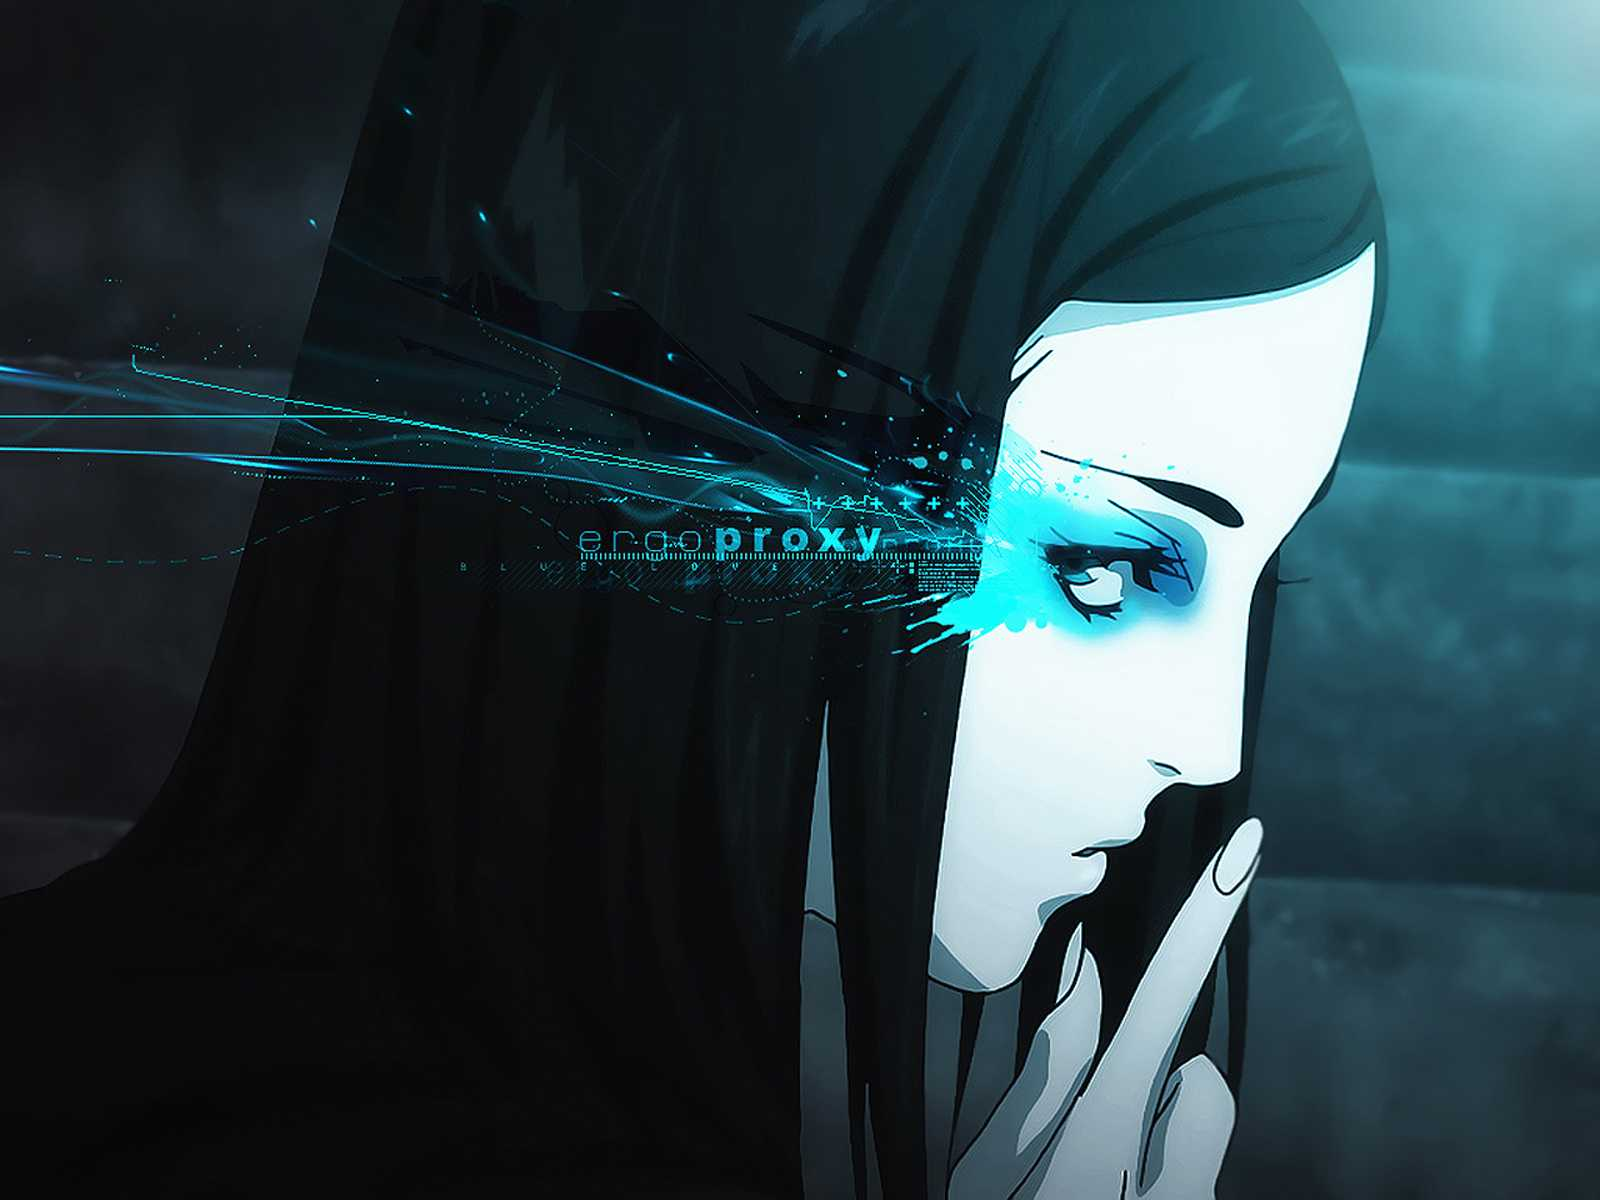 FUNimation Announces Blu-Ray Release Of 'Ergo Proxy' At SDCC 2016 | Ergo Proxy